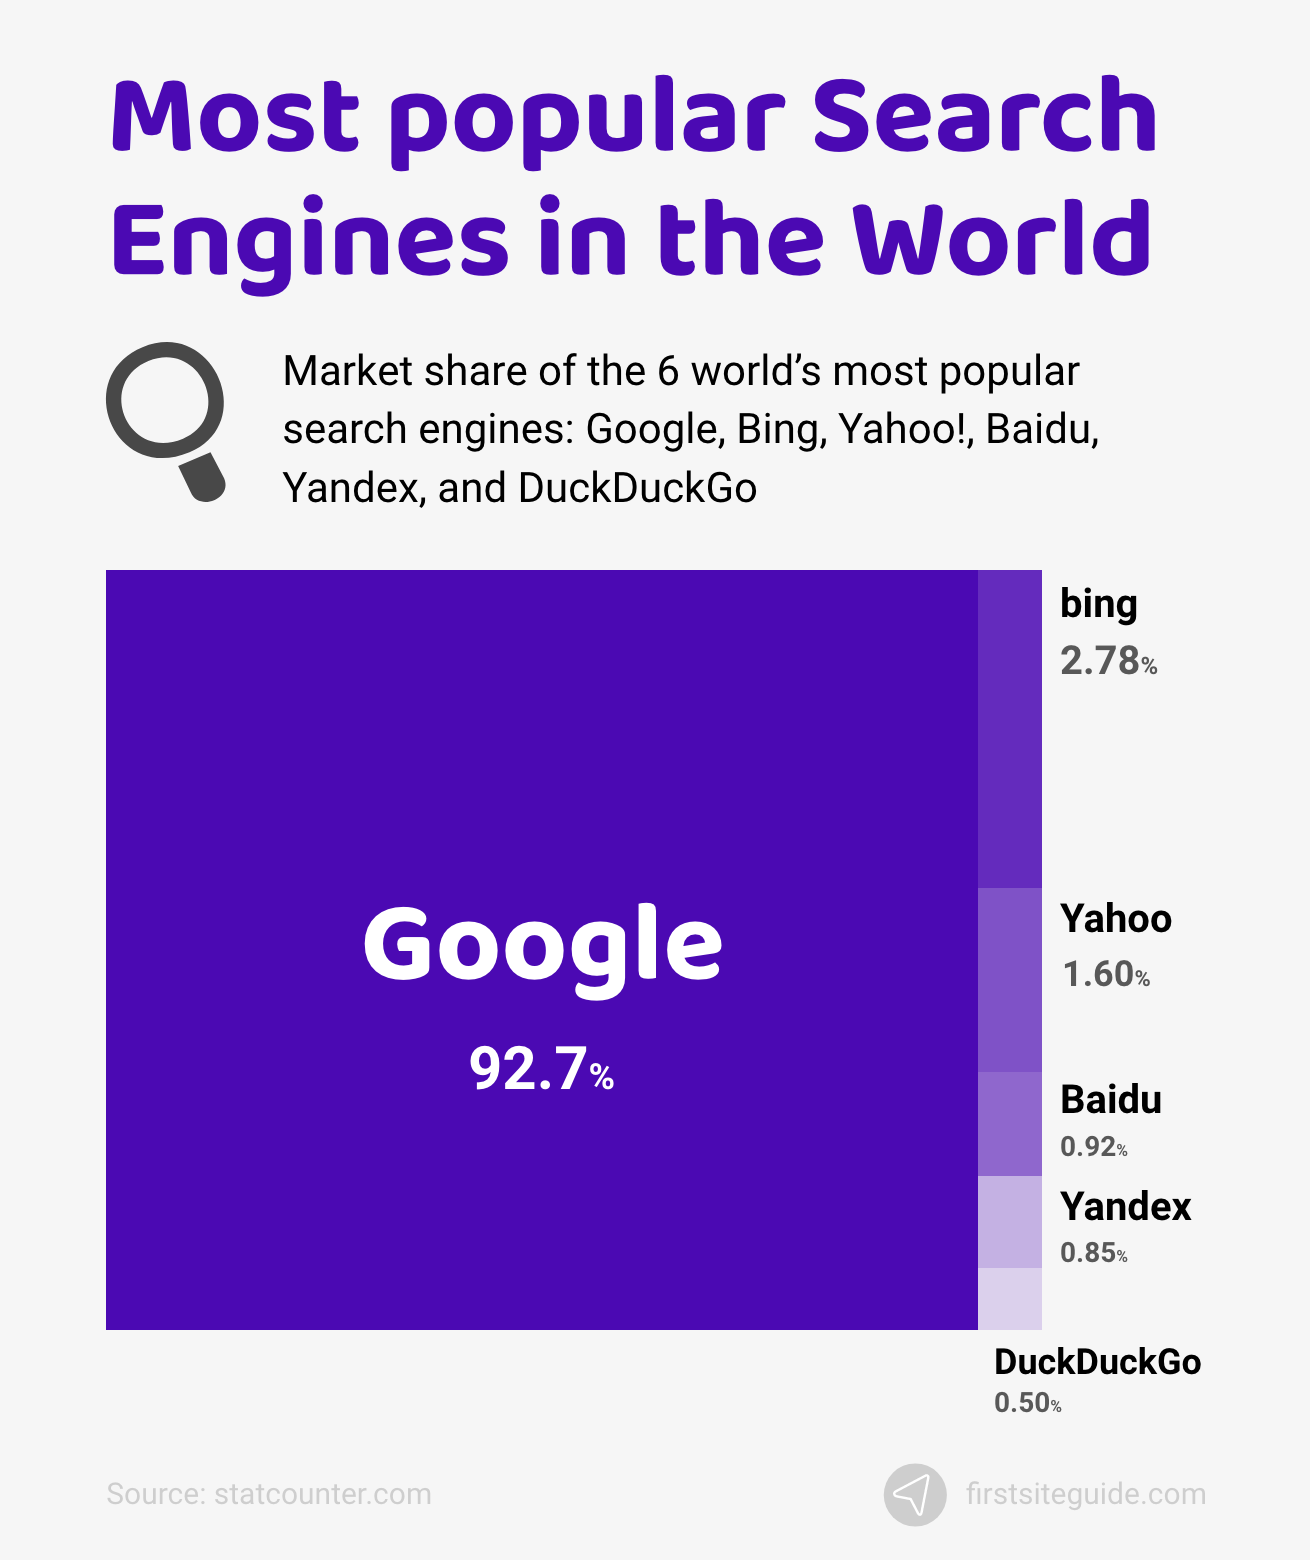 Most popular Search Engines in the World